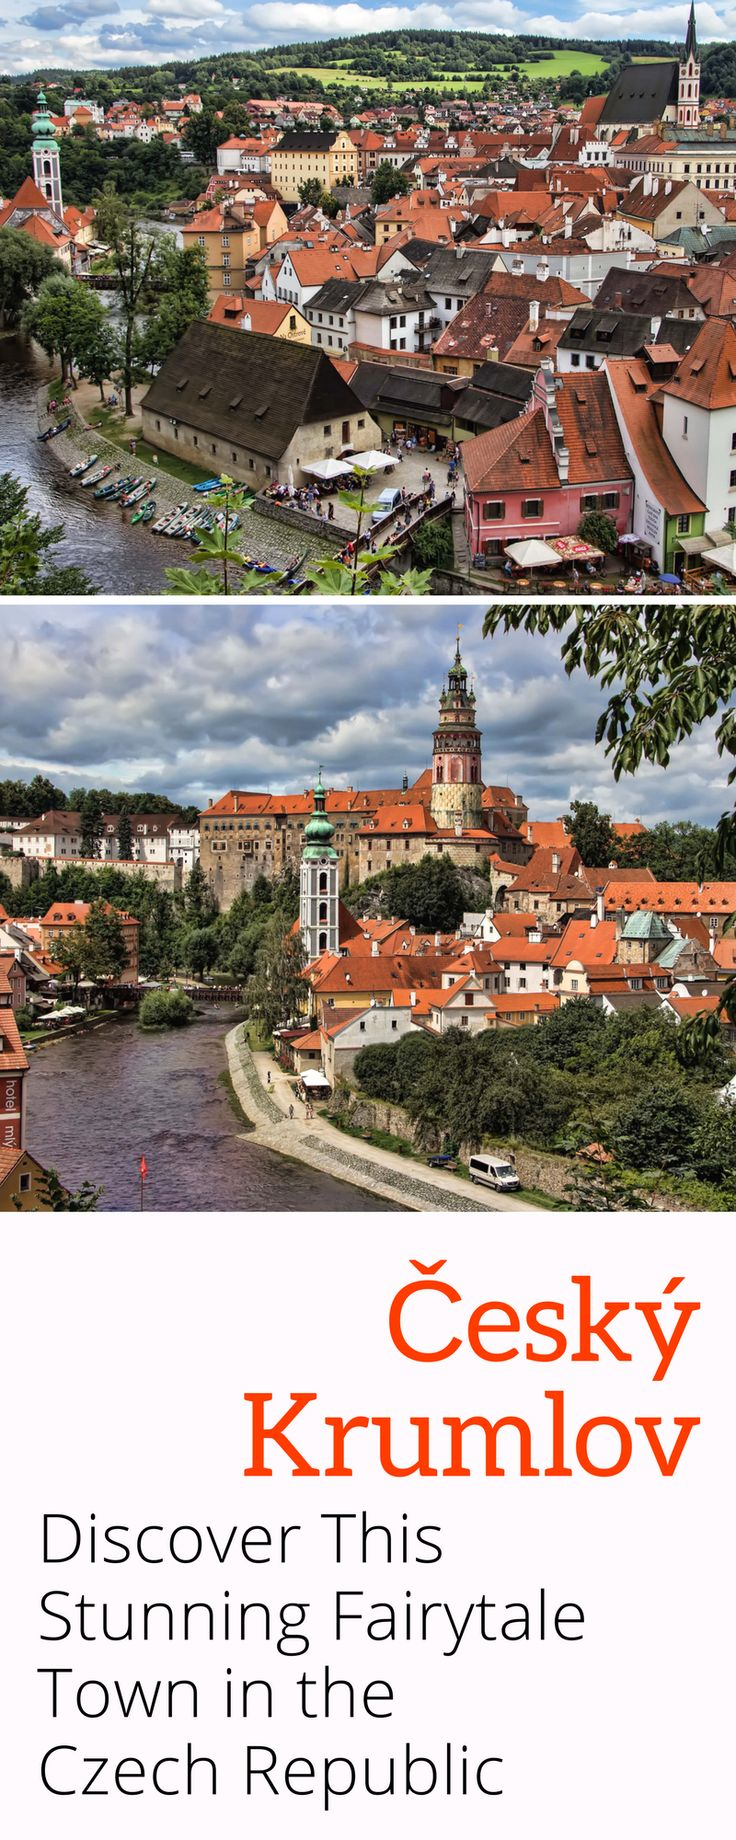 Cesky Krumlov in the is a stunning fairytale town in the Czech Republic just a few hours from Prague. A stroll through the picturesque historical centre will, thanks to its inimitable medieval character, leave you speechless. Click here for more details!